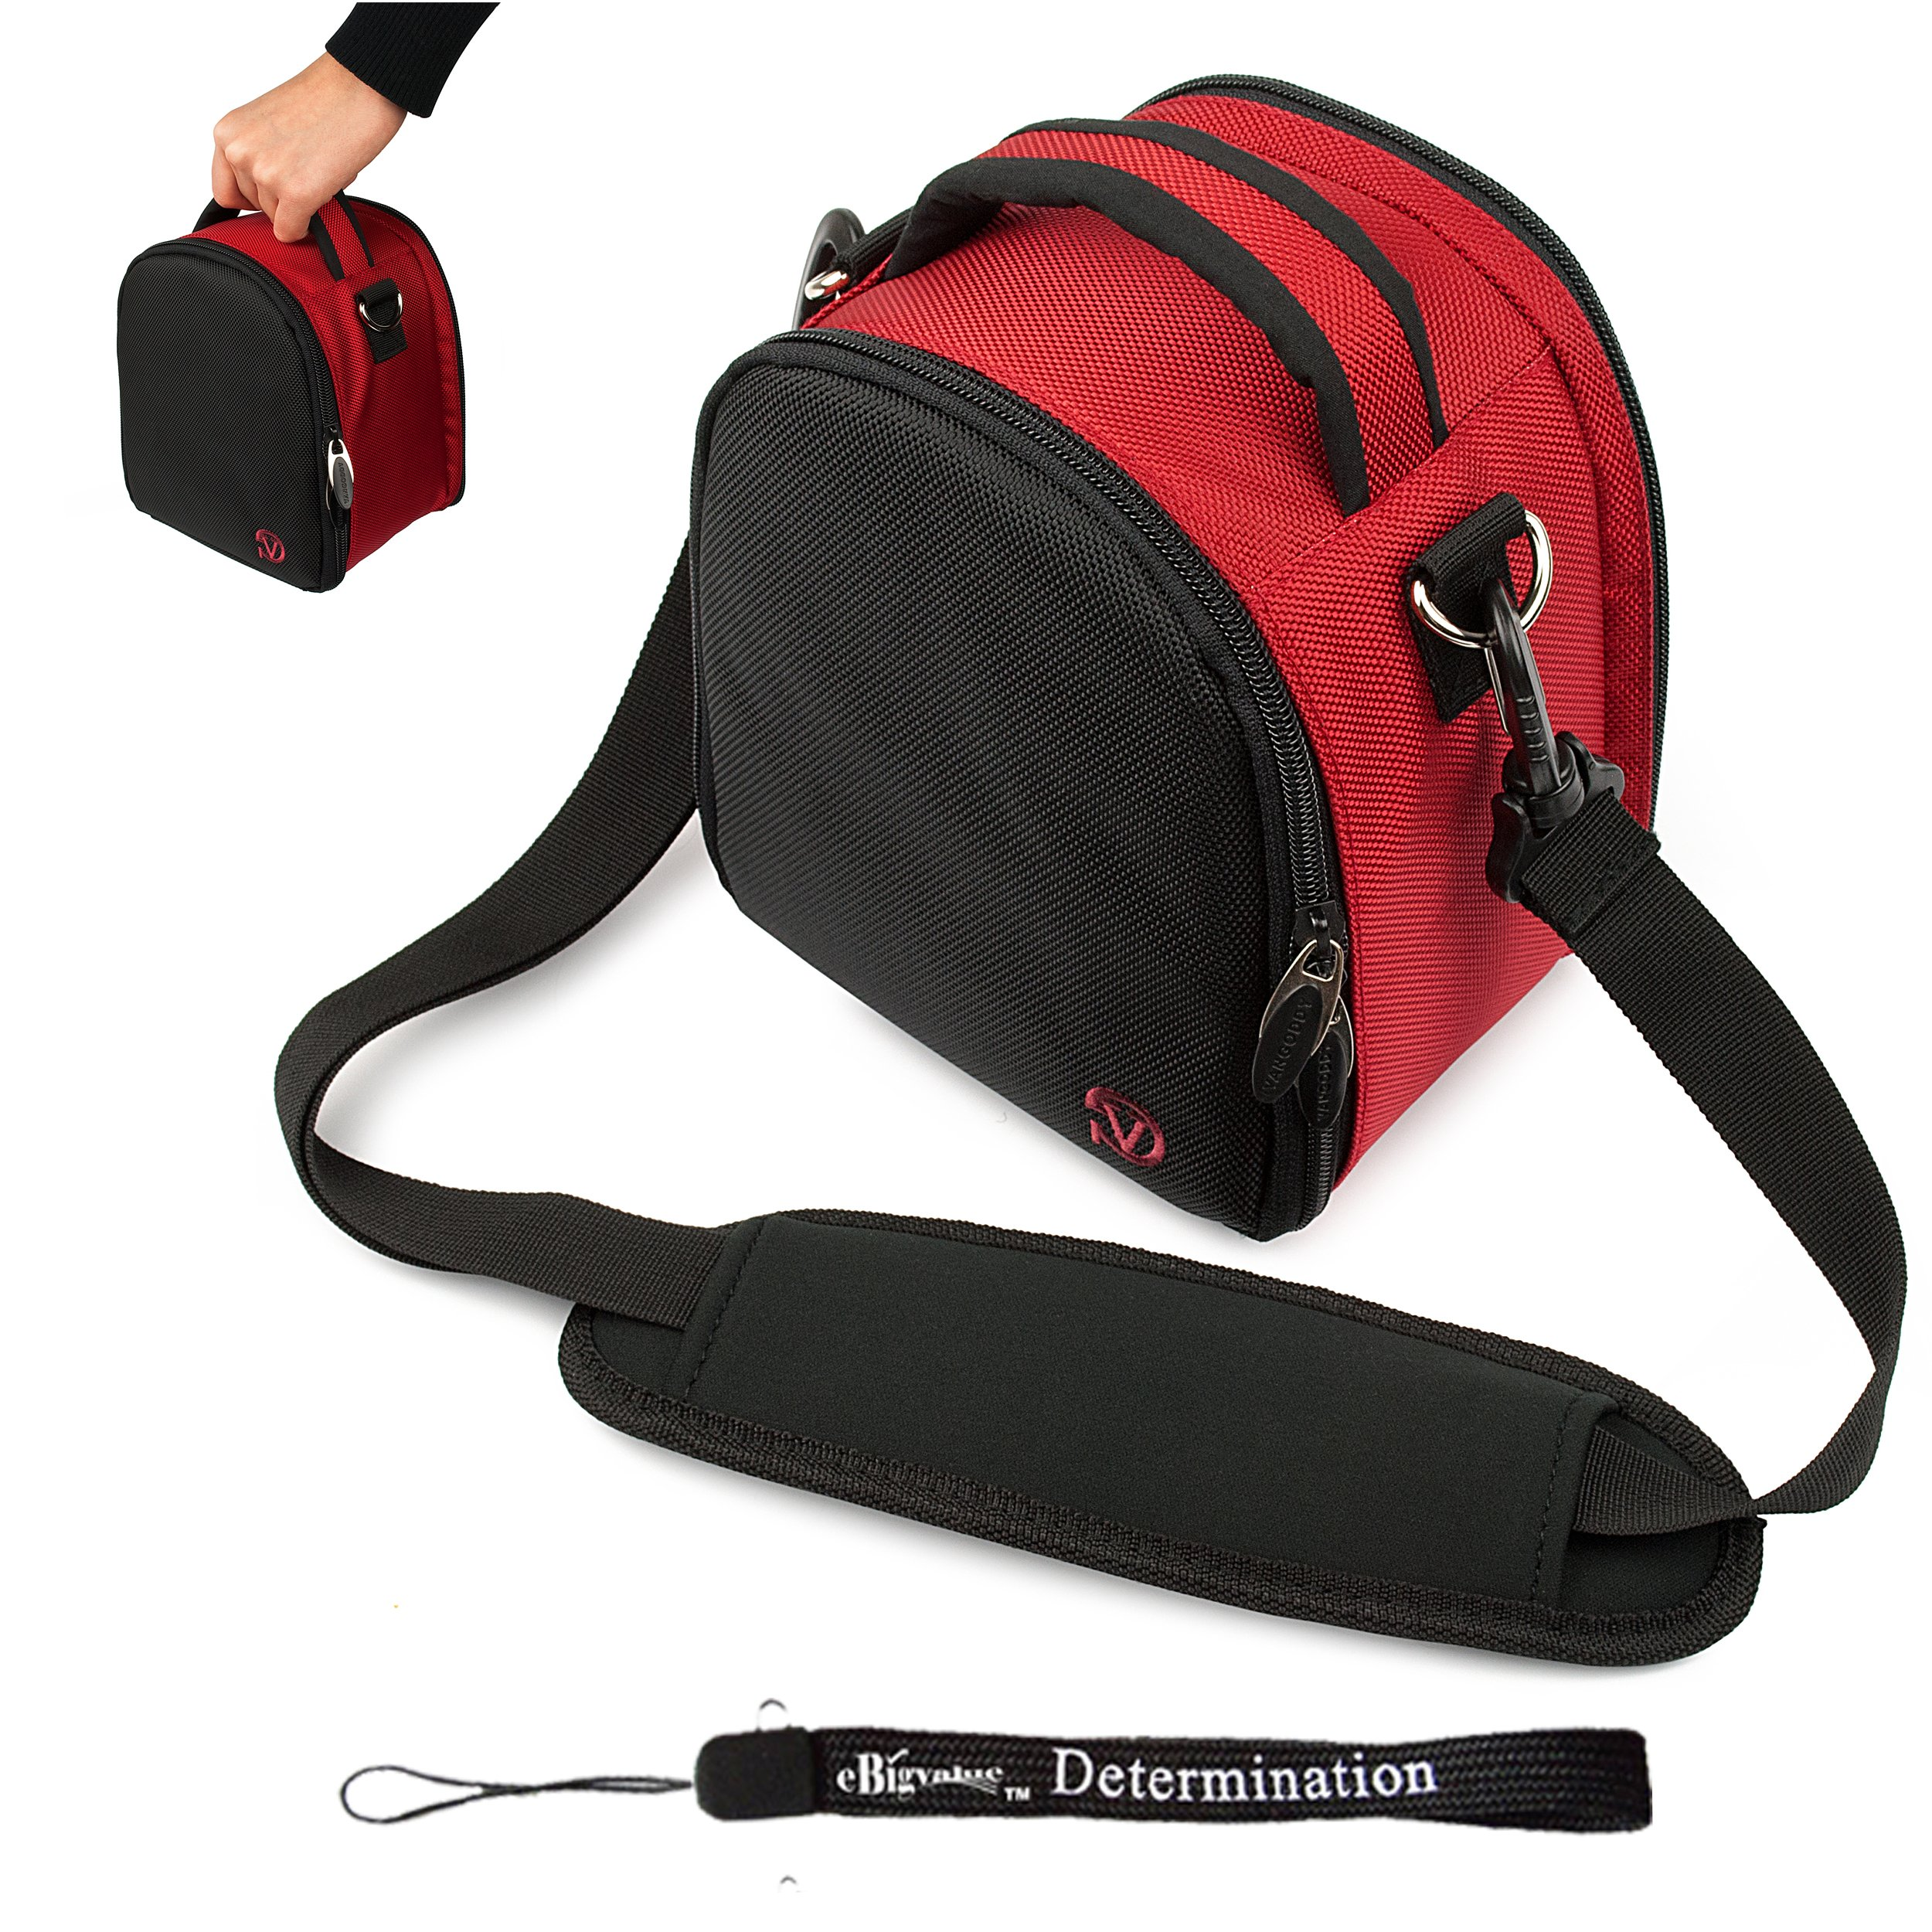 Red Slim Holster Camera Bag Carrying Case will easily hold your camera, battery charger, memory cards, and accessories For Fujifilm FinePix AV200 AX300 F300EXR F500EXR F550EXR F600EXR JV200 JX280 JX300 JX350 JX370 JX420 JZ500 T200 T300 XP20 XP30 Z90 Z800E